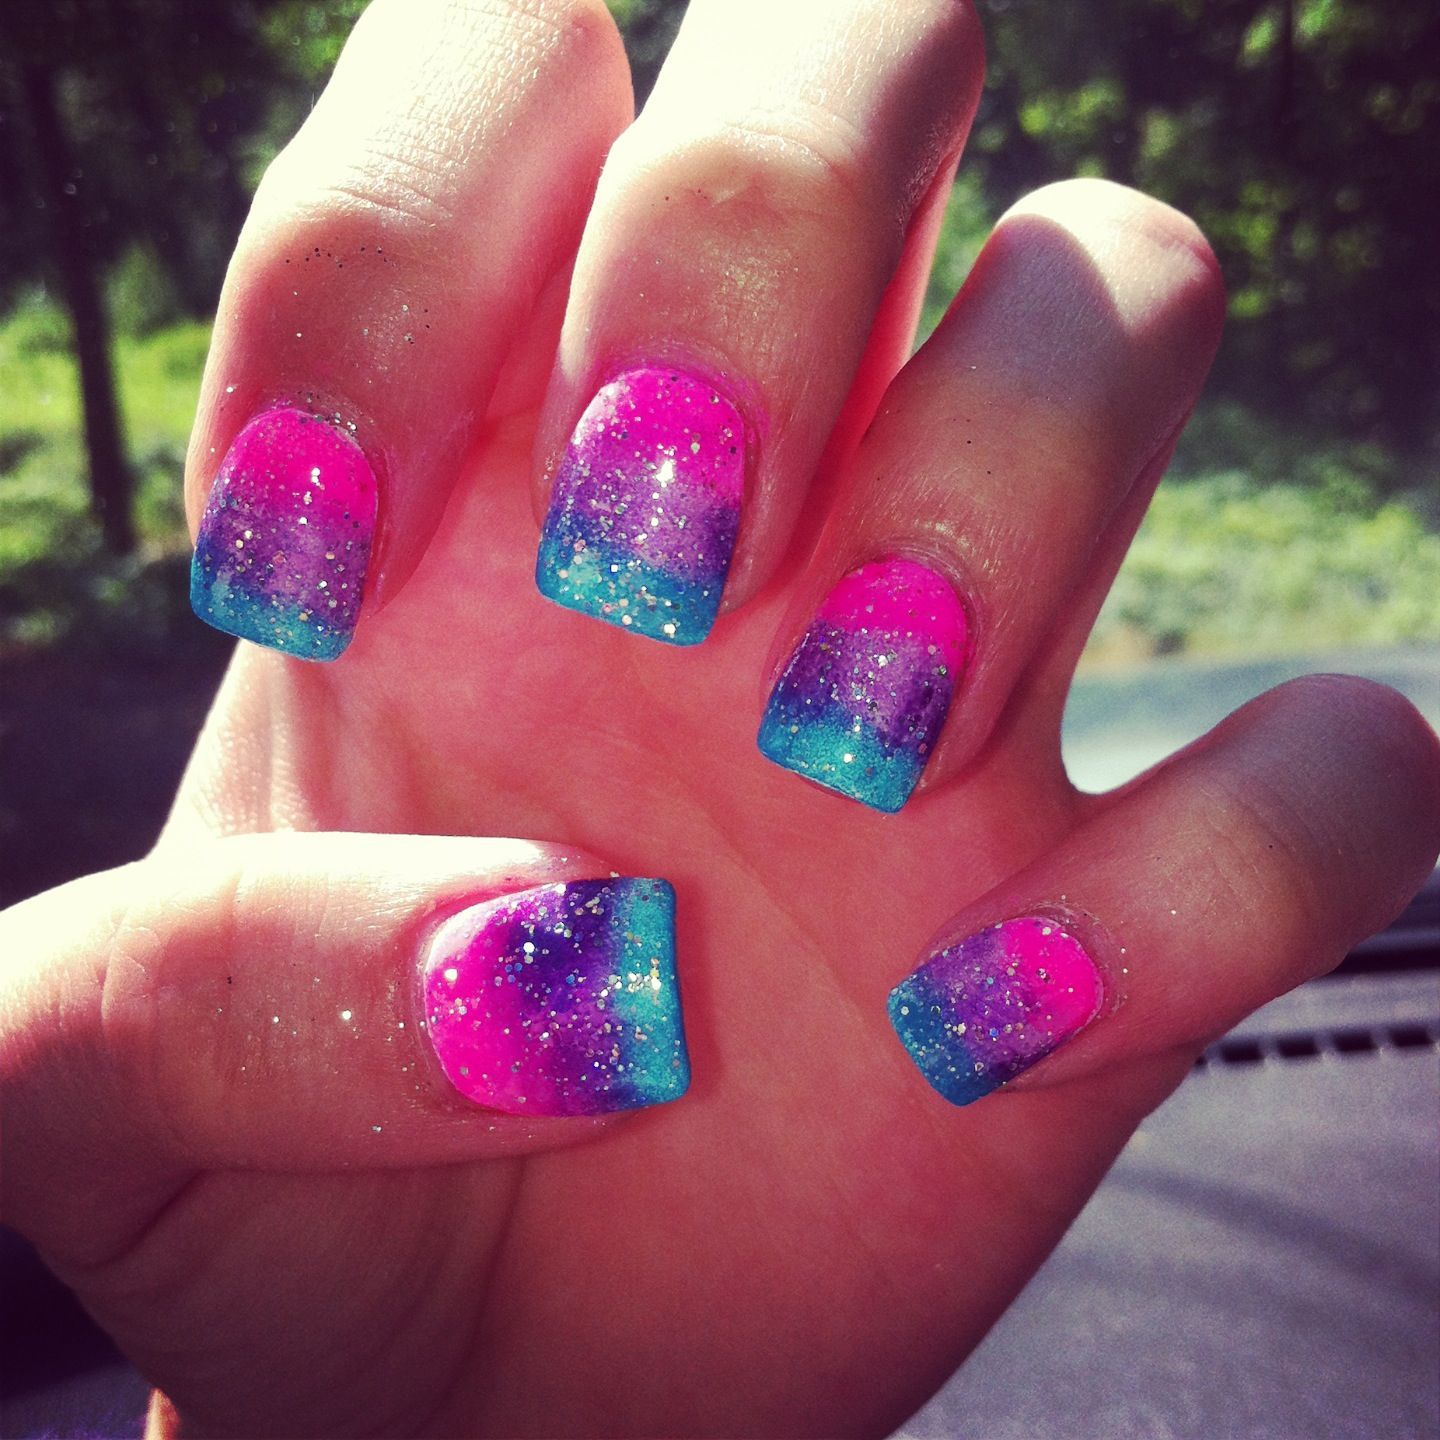 Pink blue and purple ombr w sparkles nail art nails pink blue and purple ombr w sparkles nail art prinsesfo Image collections